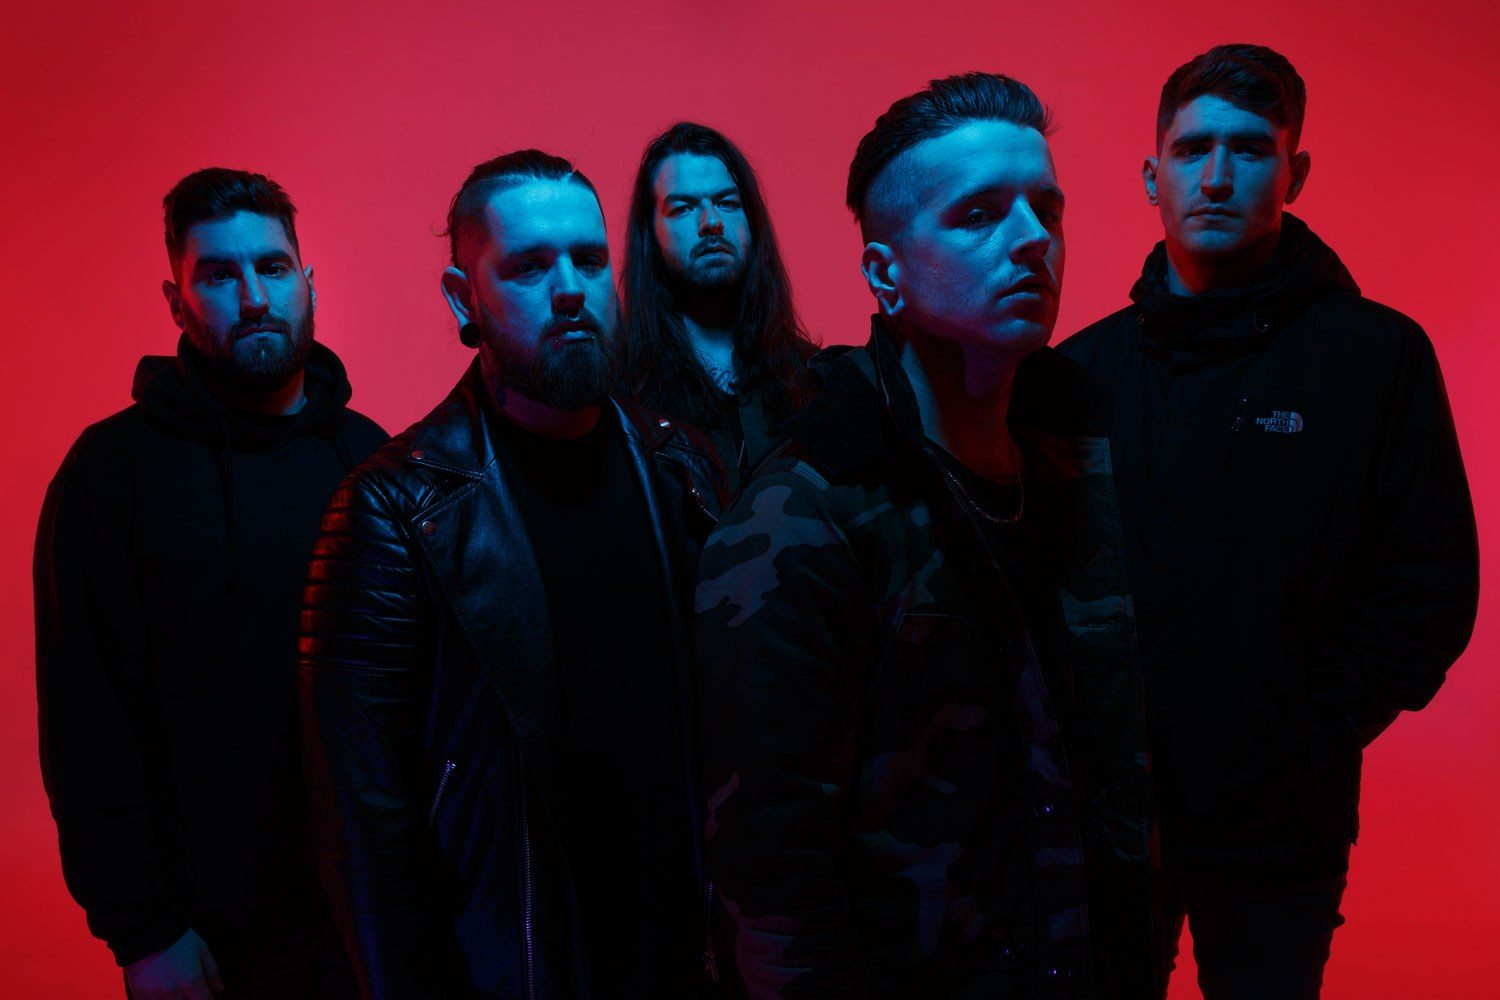 Bury Tomorrow have announced their only UK shows of 2019